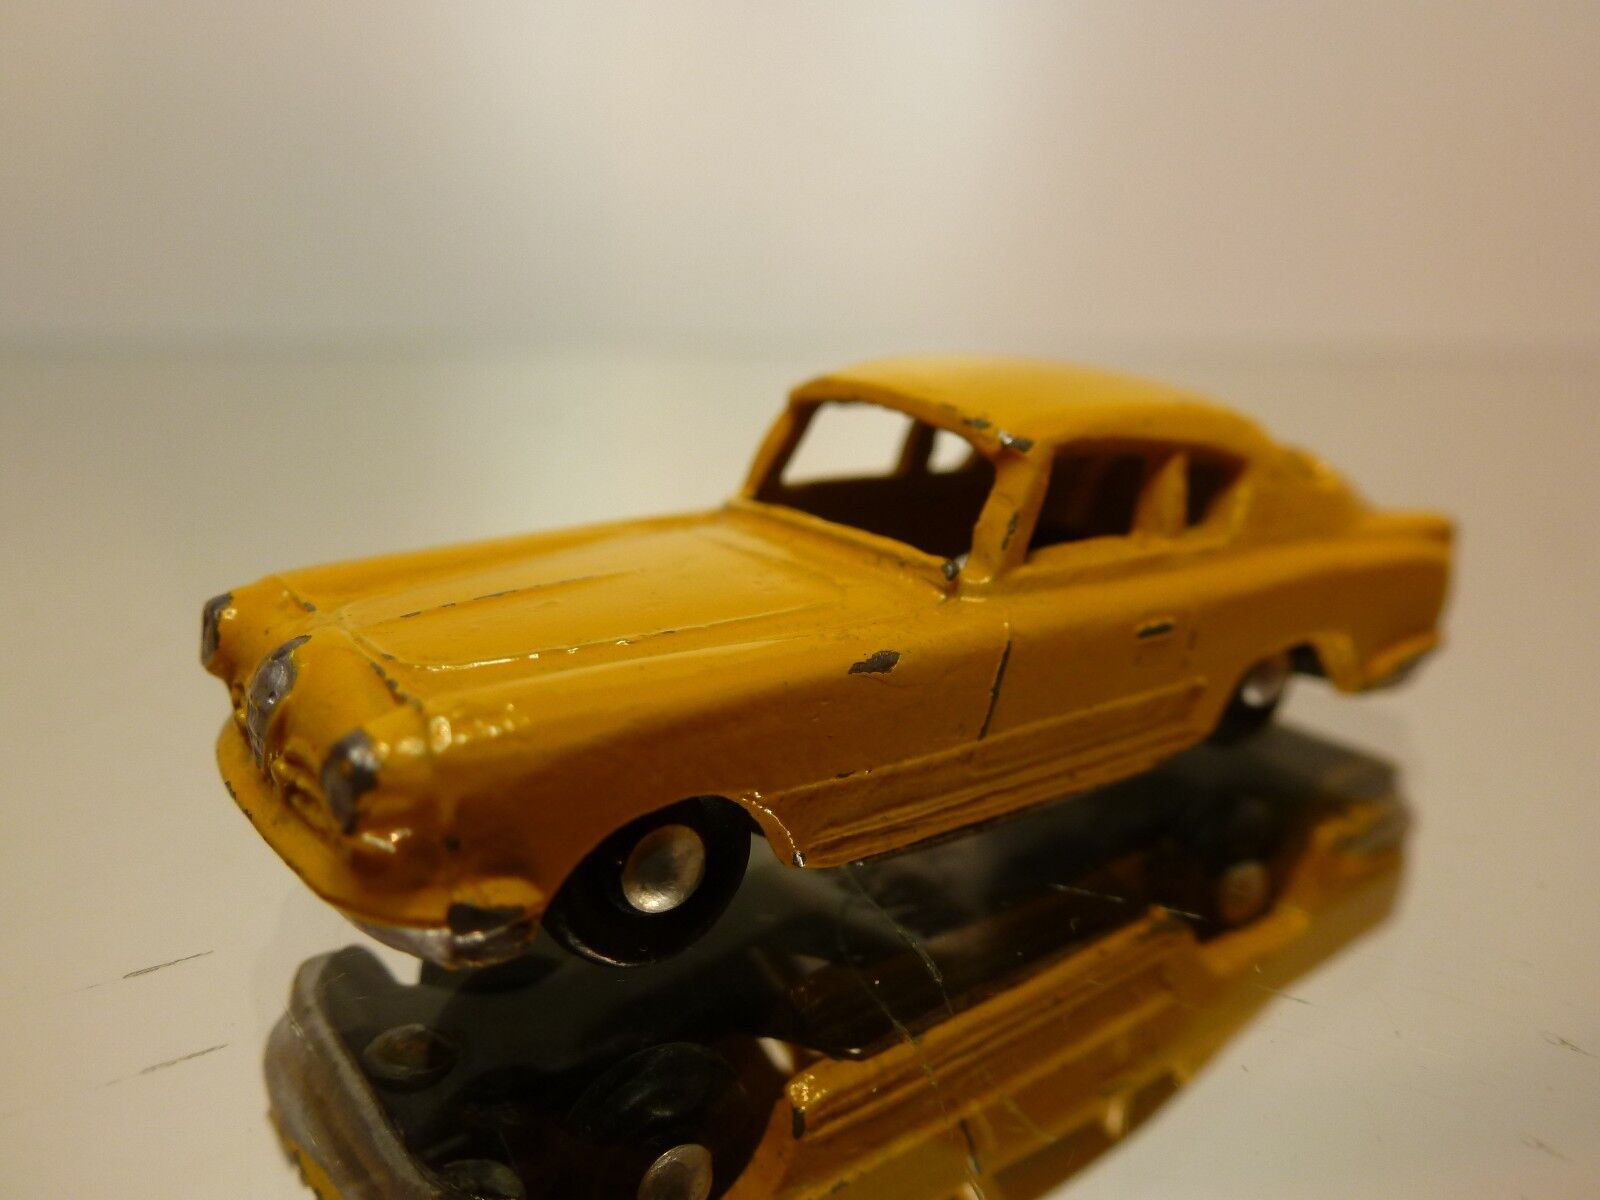 JAPAN - METAL  ALFA ROMEO COUPE - jaune L5.0cm - VERY RARE - GOOD CONDITION